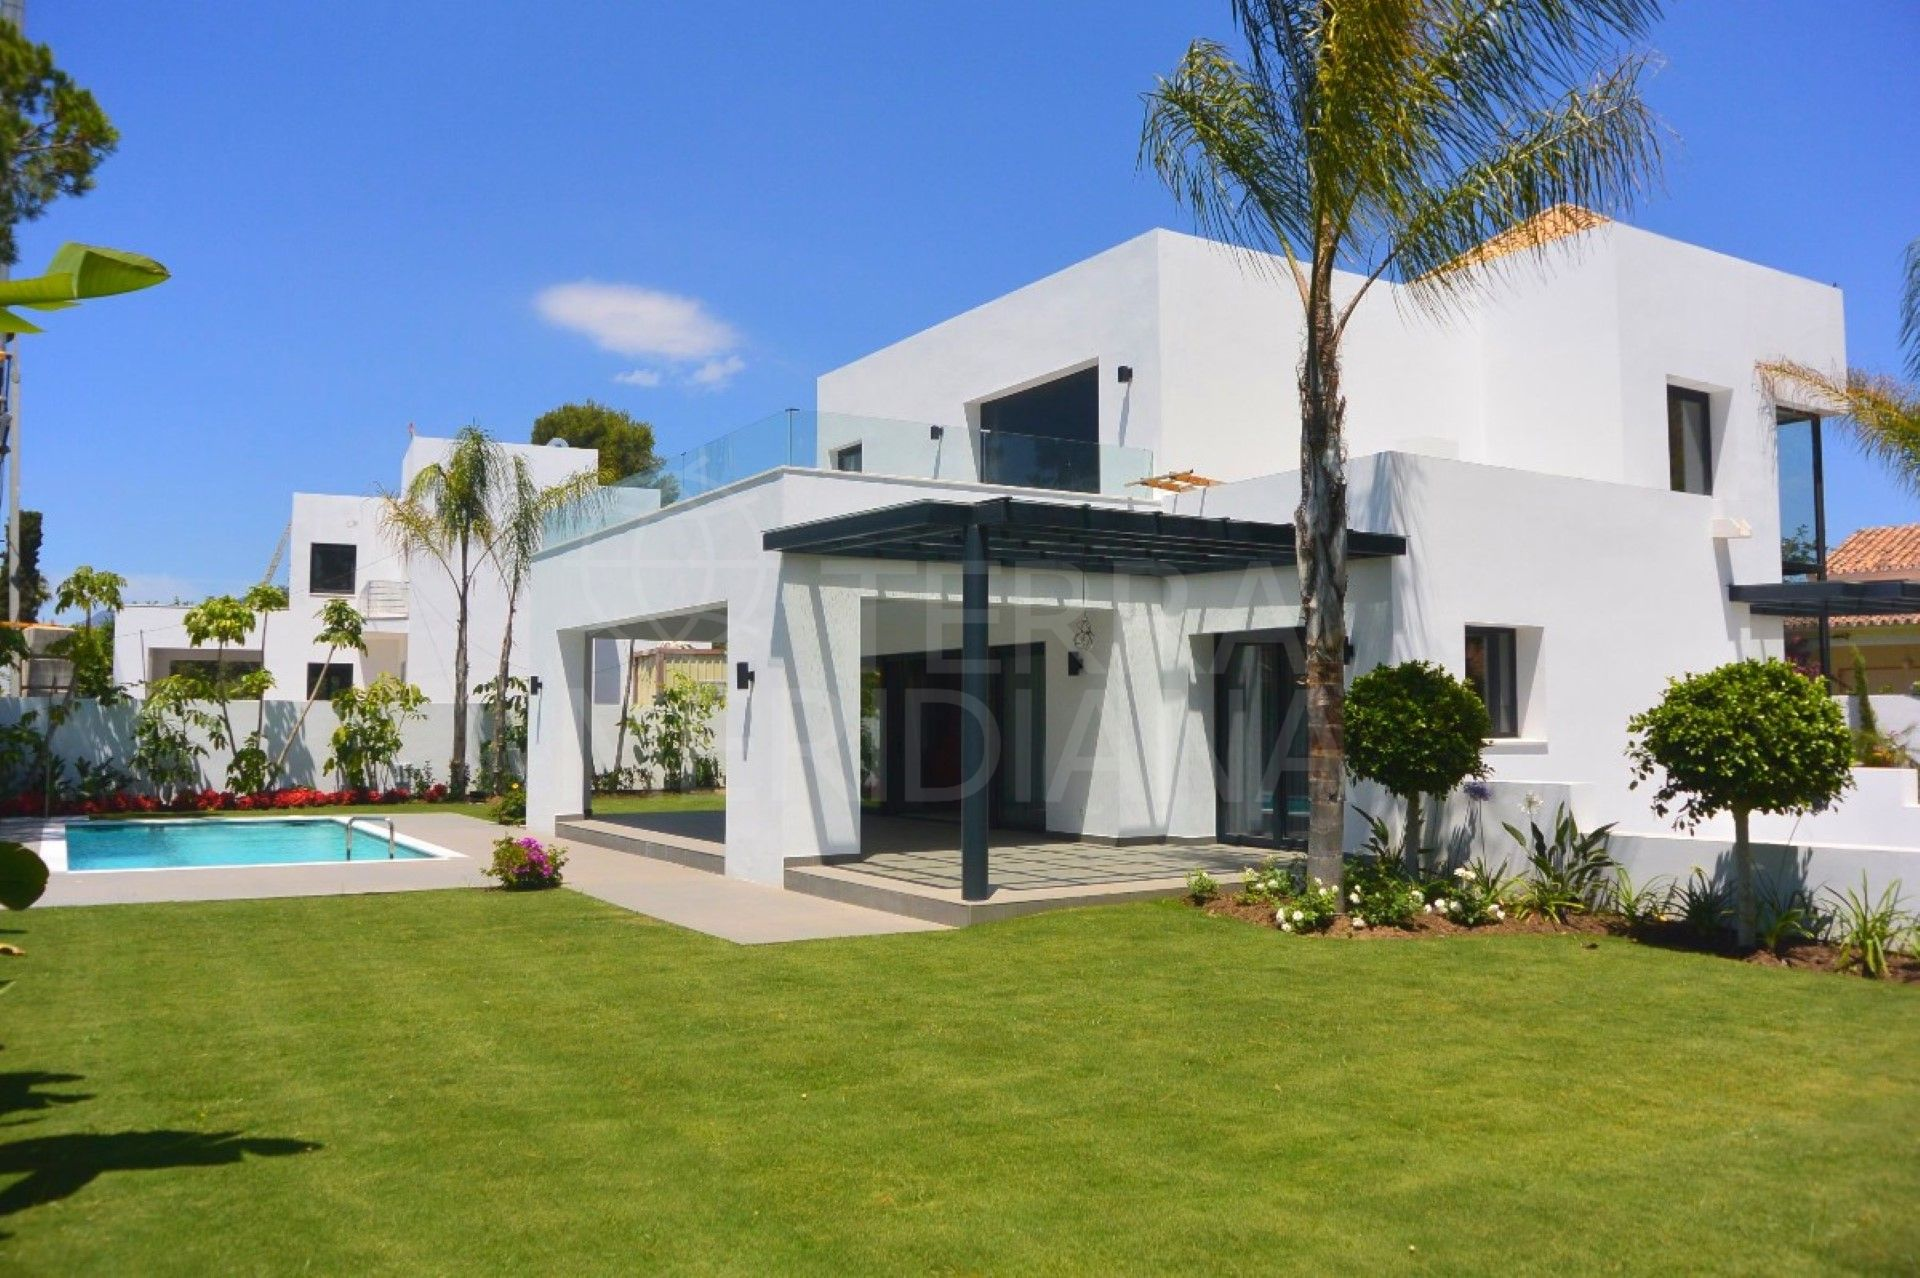 Contemporary family villa for sale, with private pool and sea views, close to the beach, New Golden Mile, Estepona